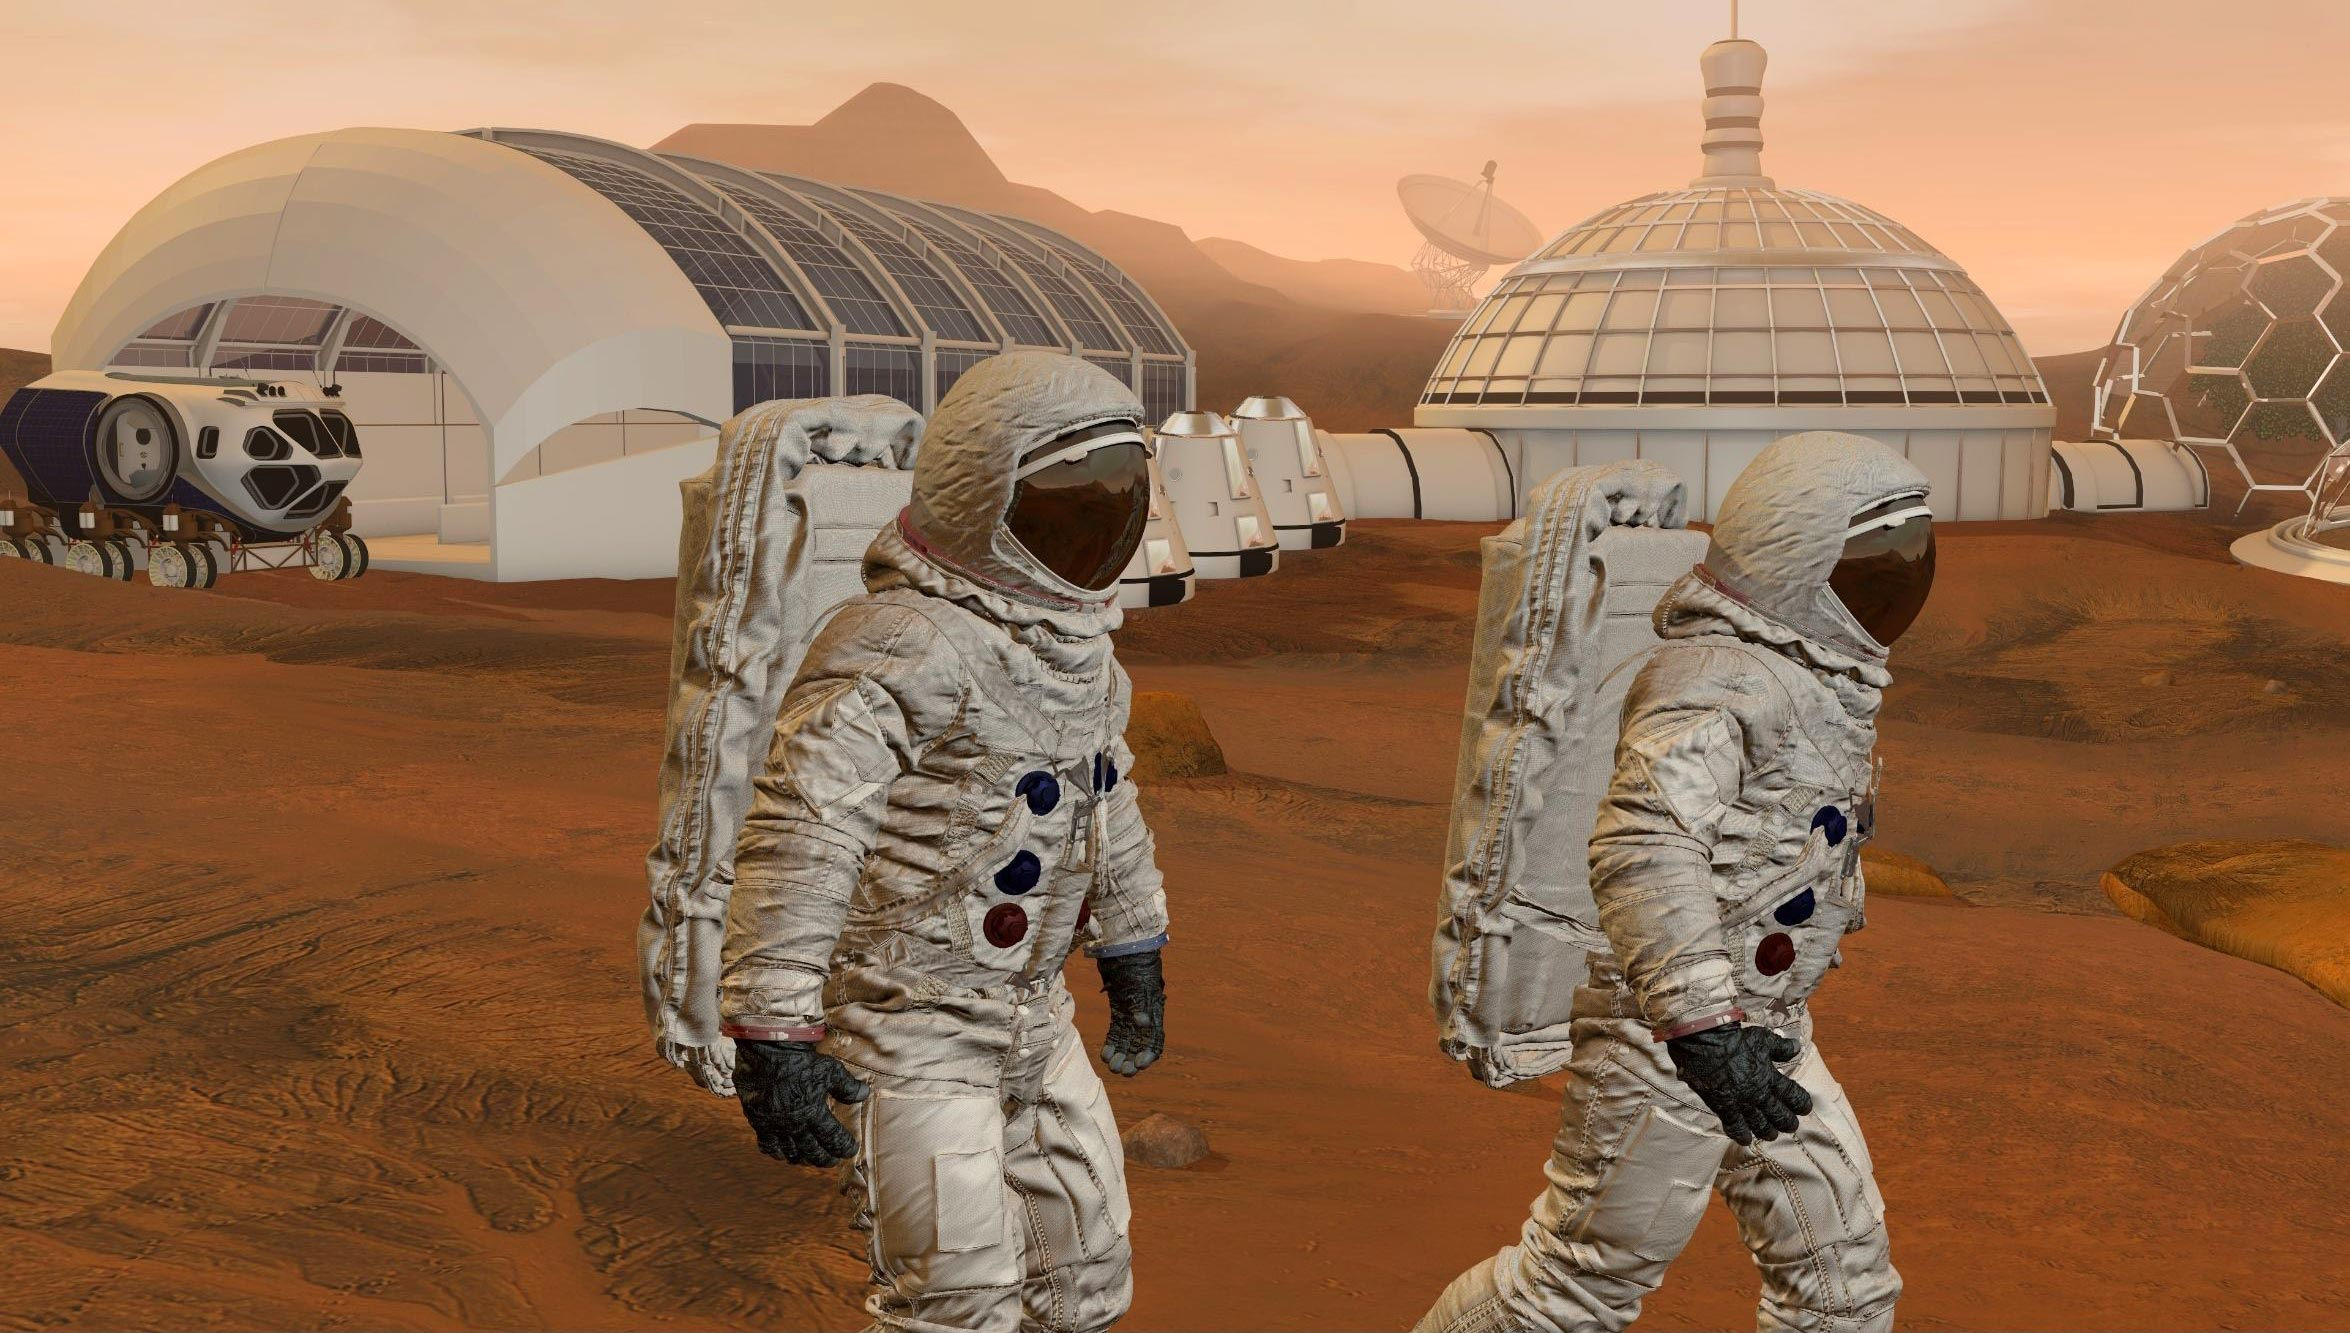 Mars Settlement Likely by 2050 Says Expert – But Not at Levels Predicted by Elon Musk